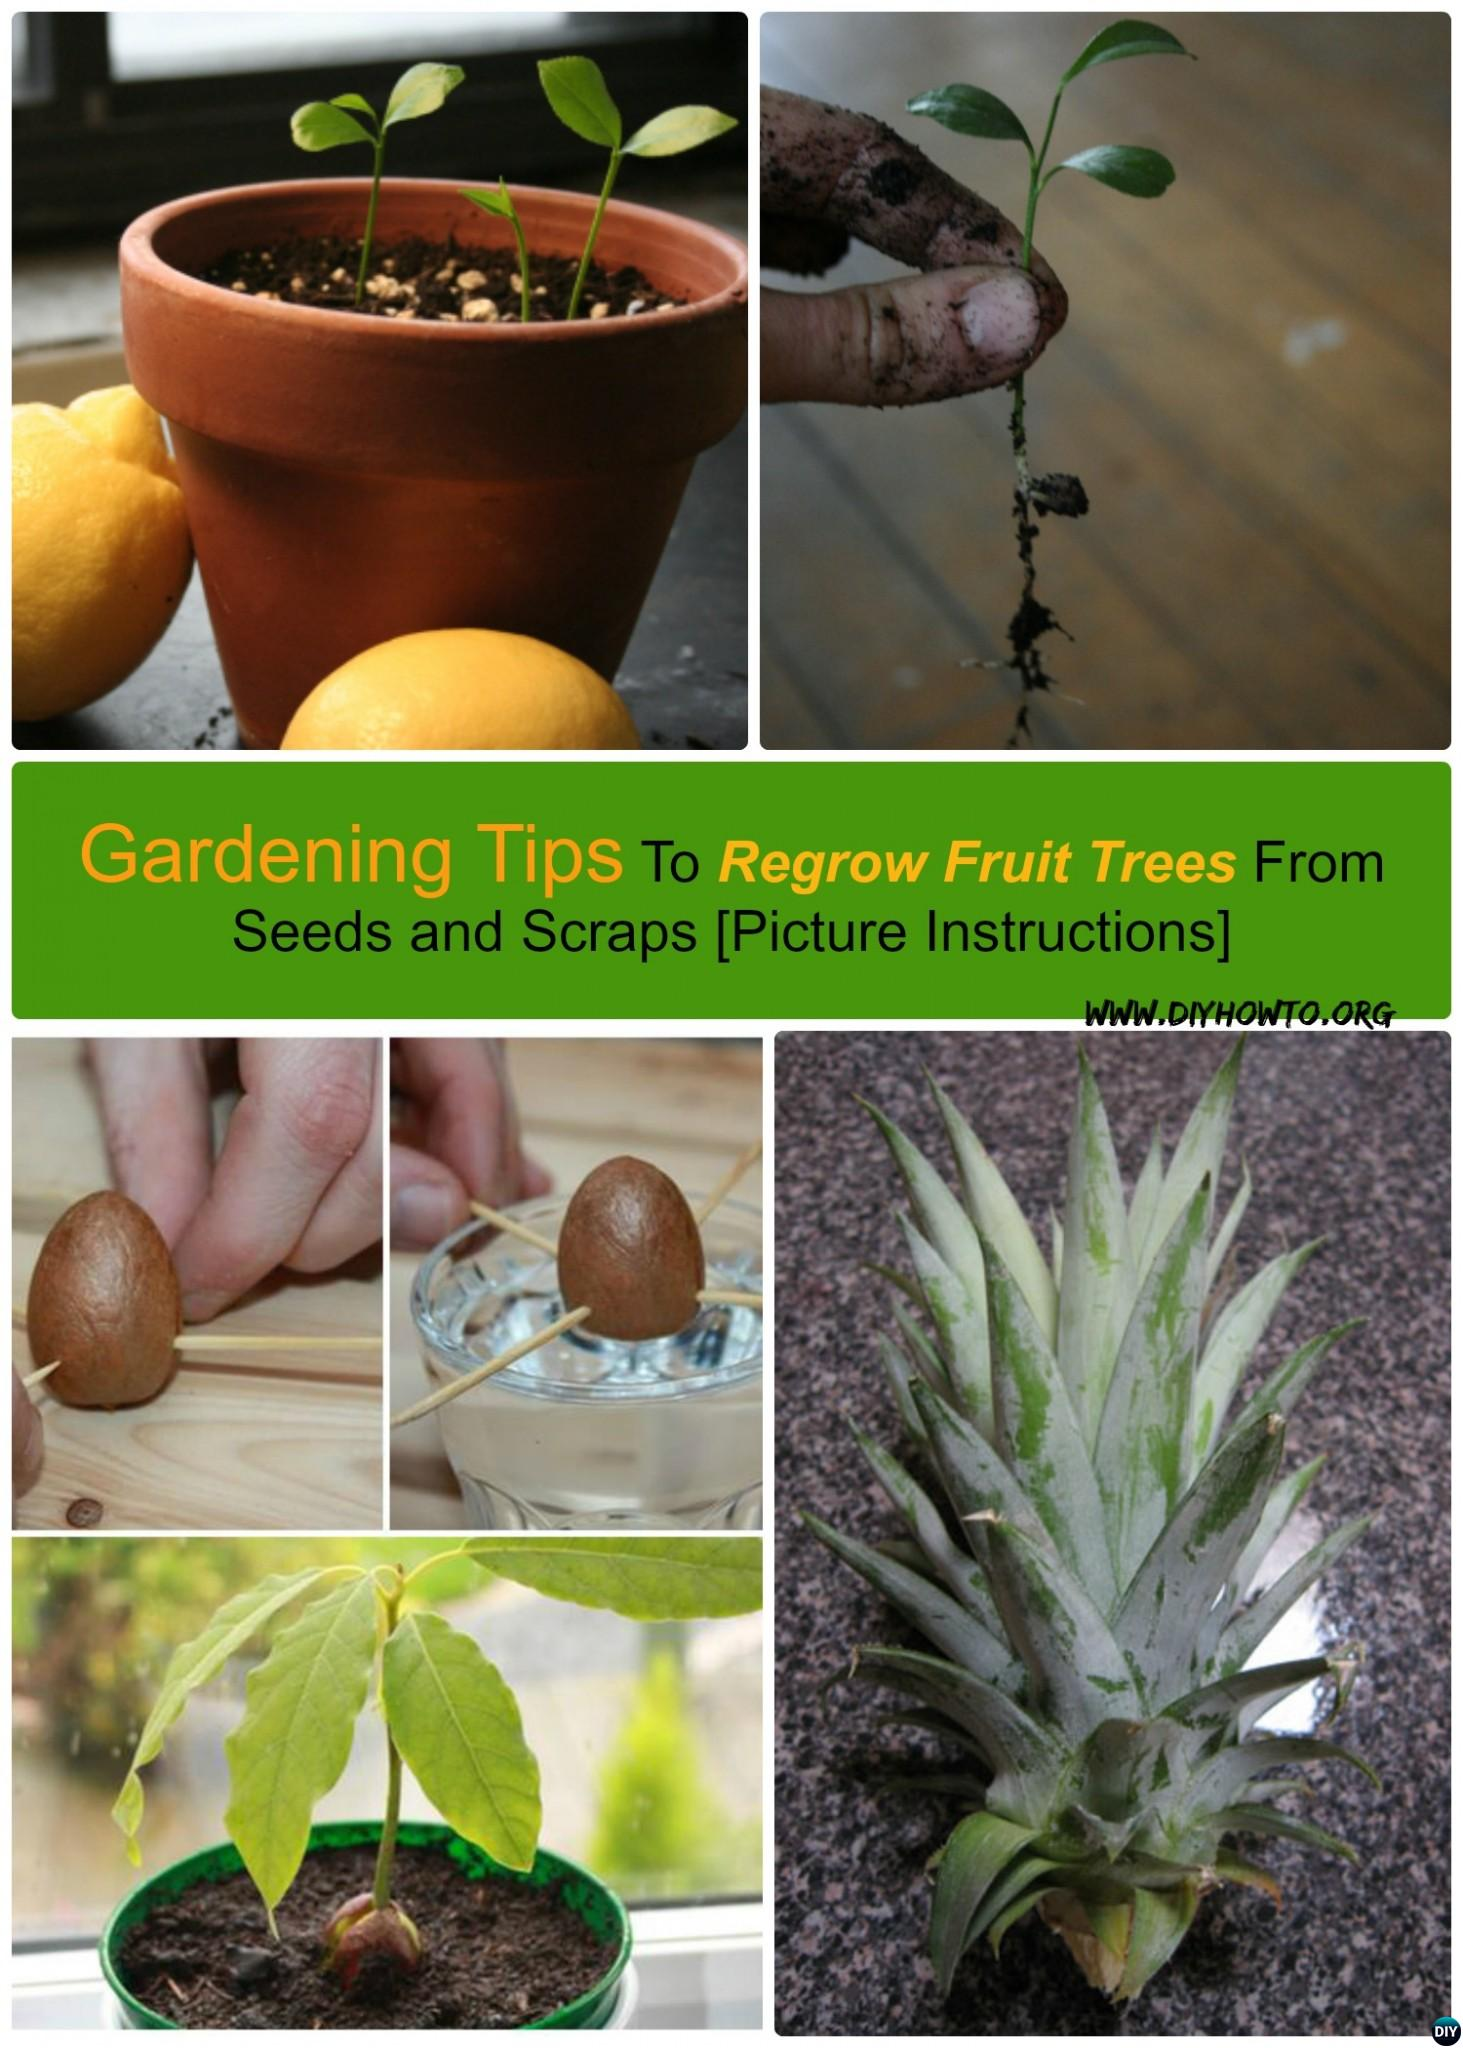 Tips to regrow fruit trees from seeds and scraps yourself for Grow your own avocado tree from seed